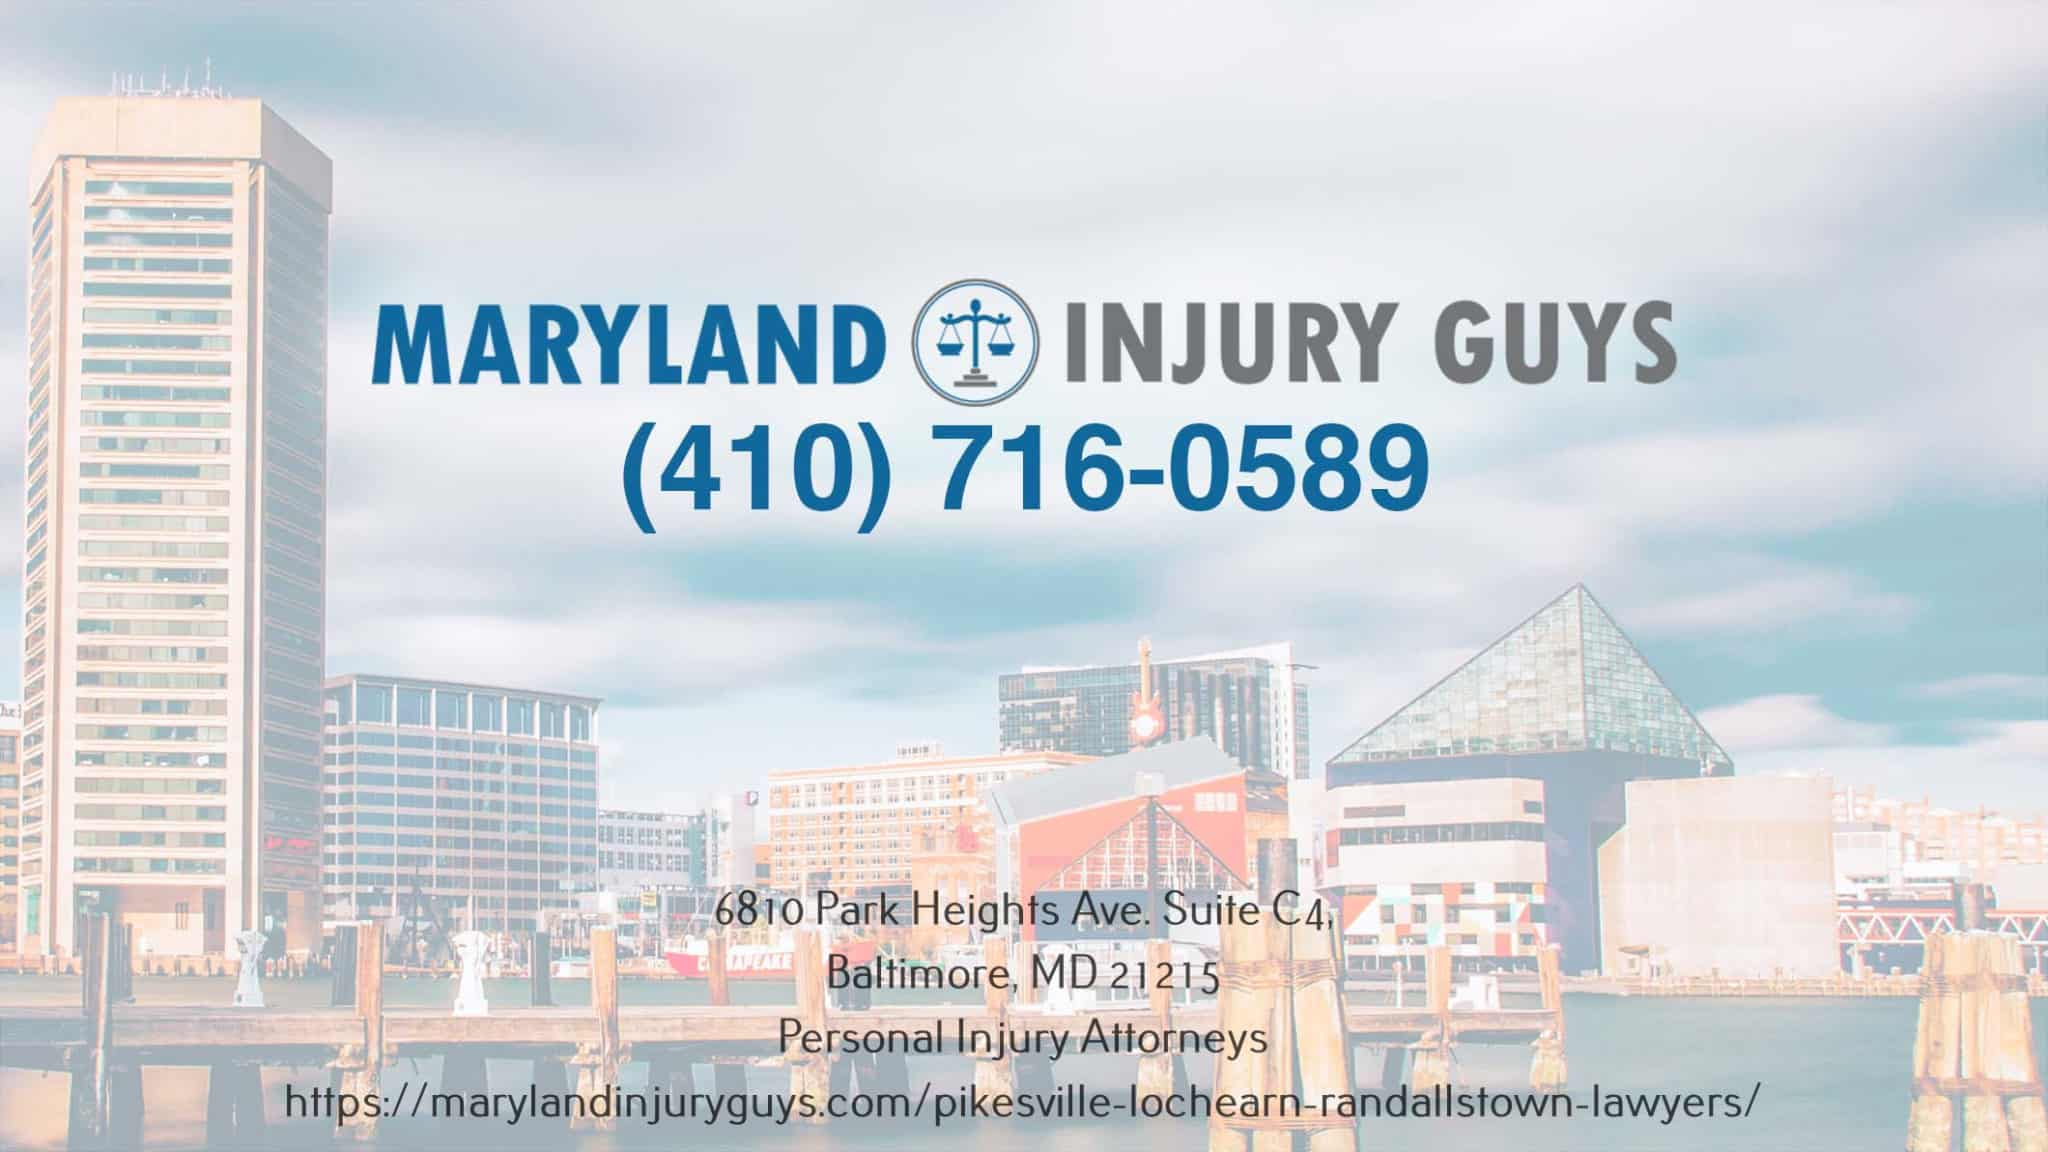 maryland injury guys law office